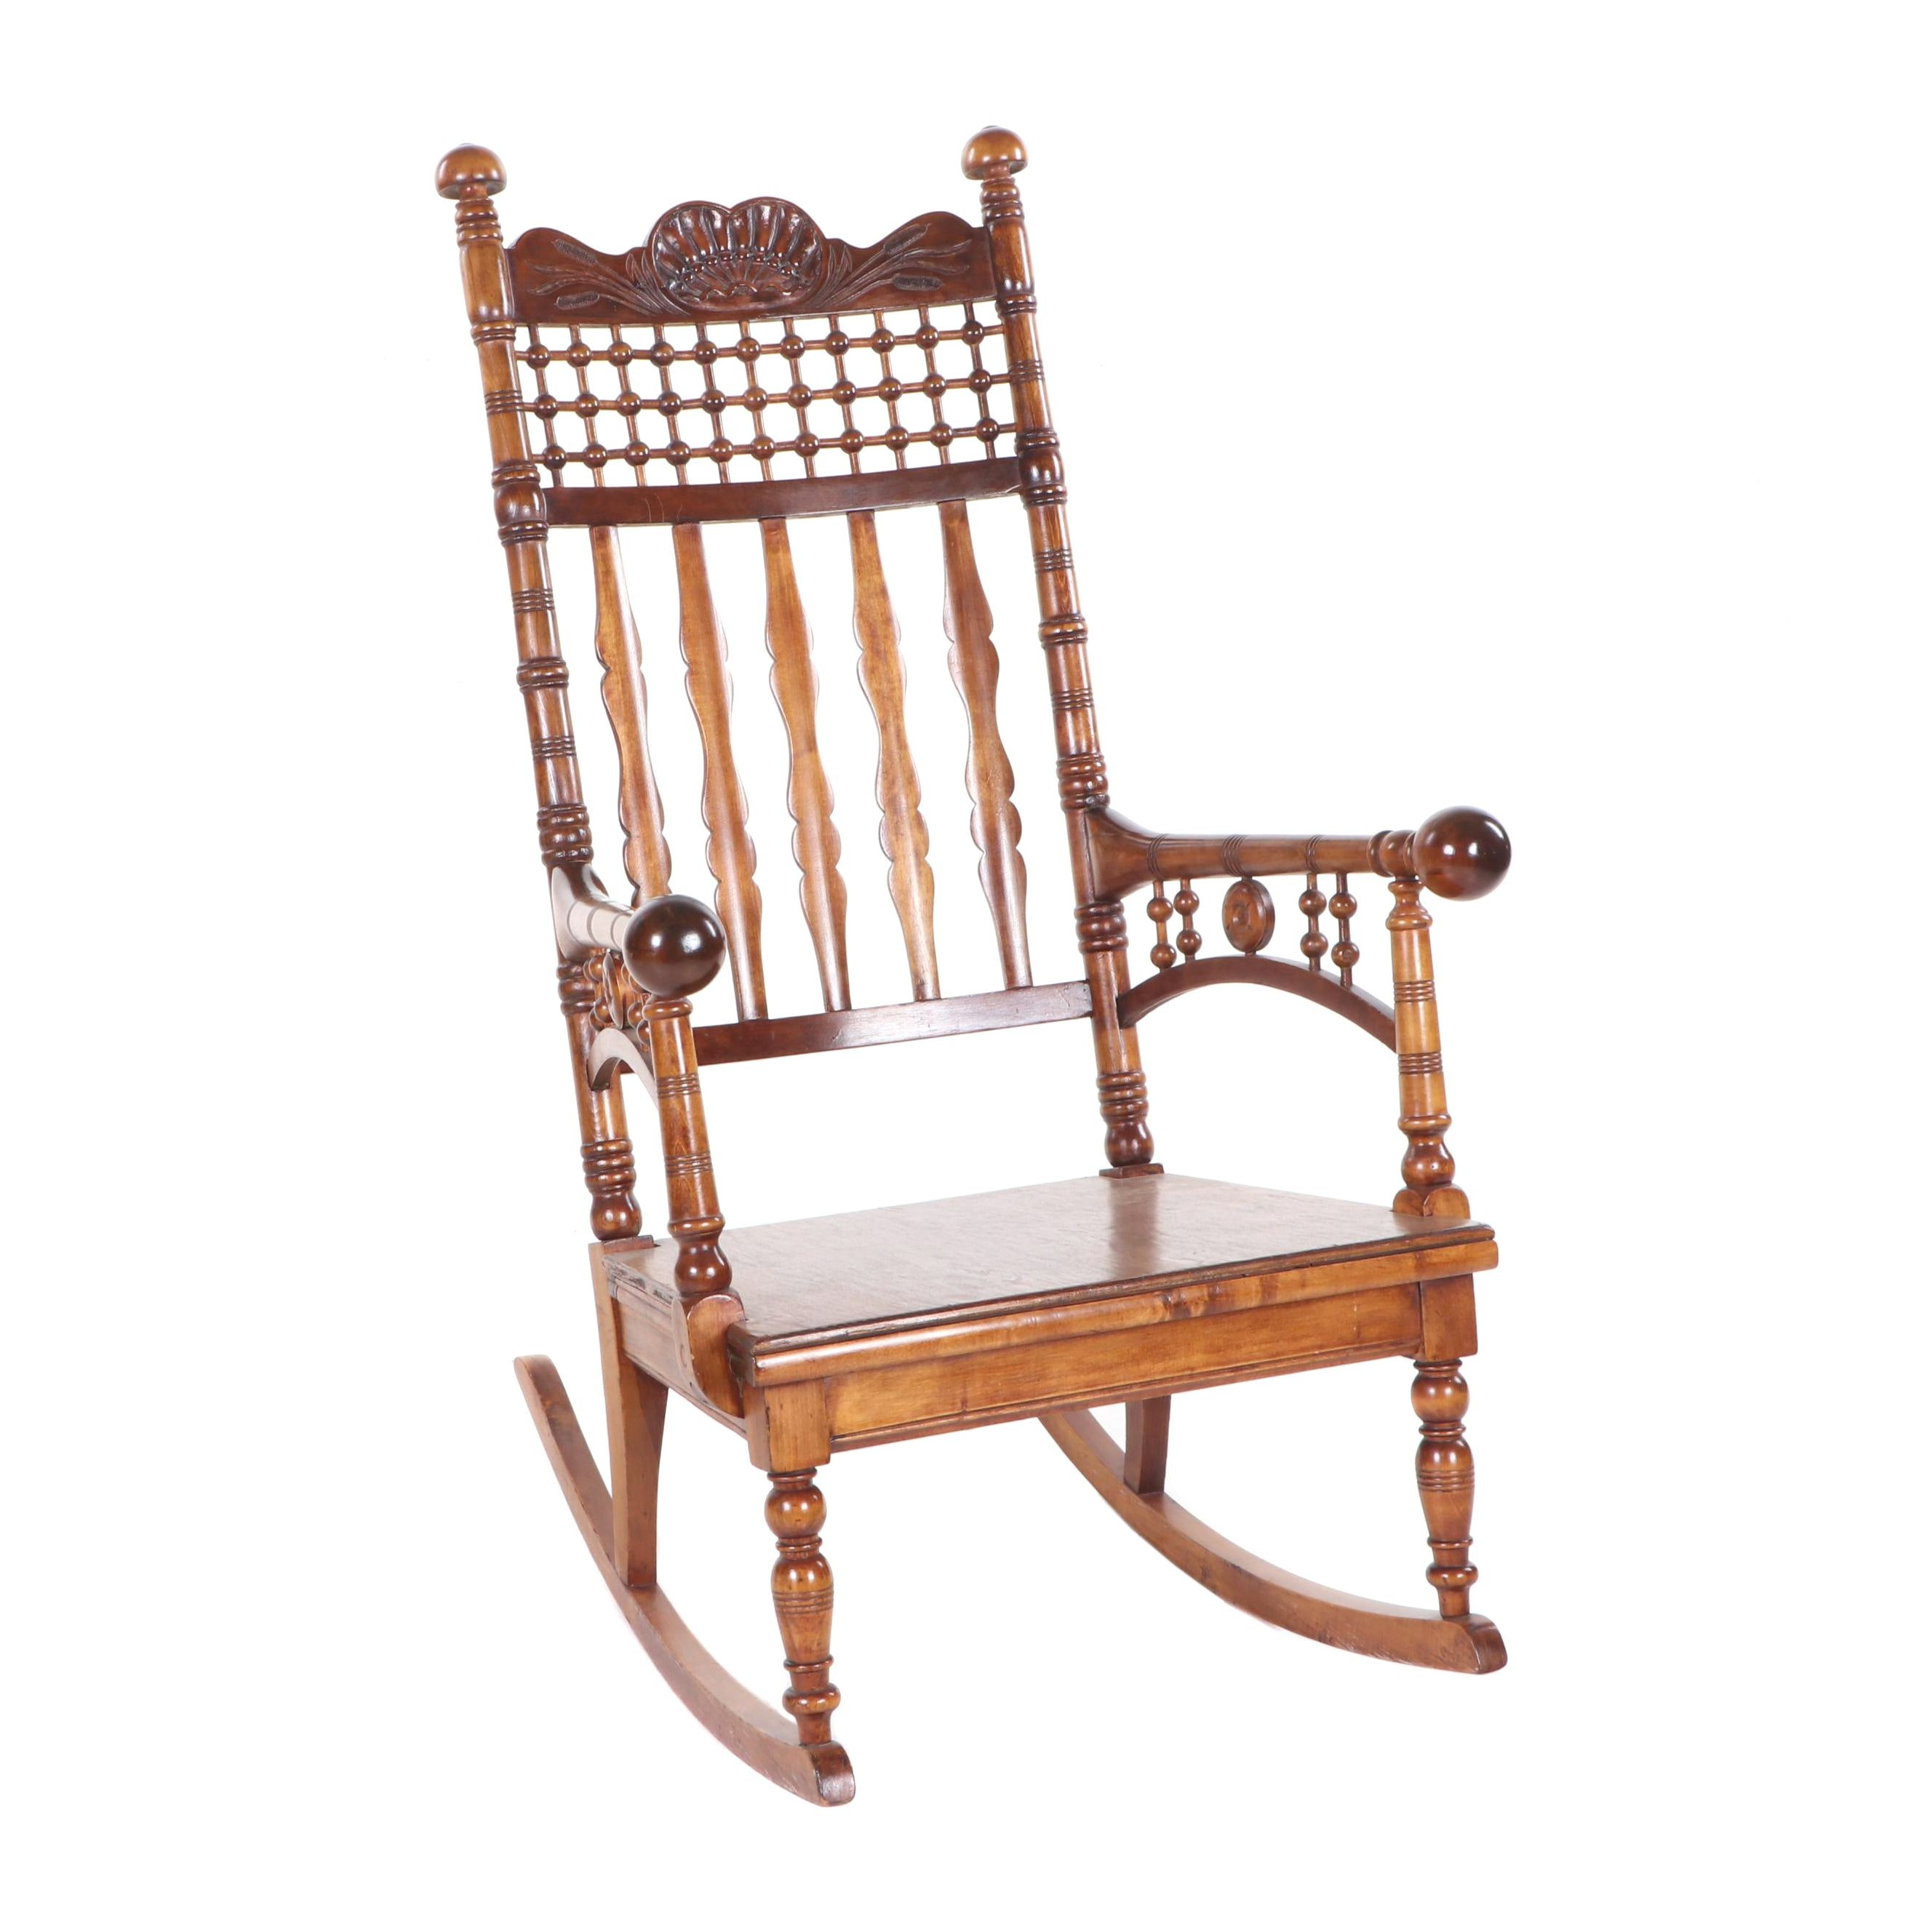 Victorian Aesthetic Movement Mixed Hardwood Rocking Chair, Late 19th Century